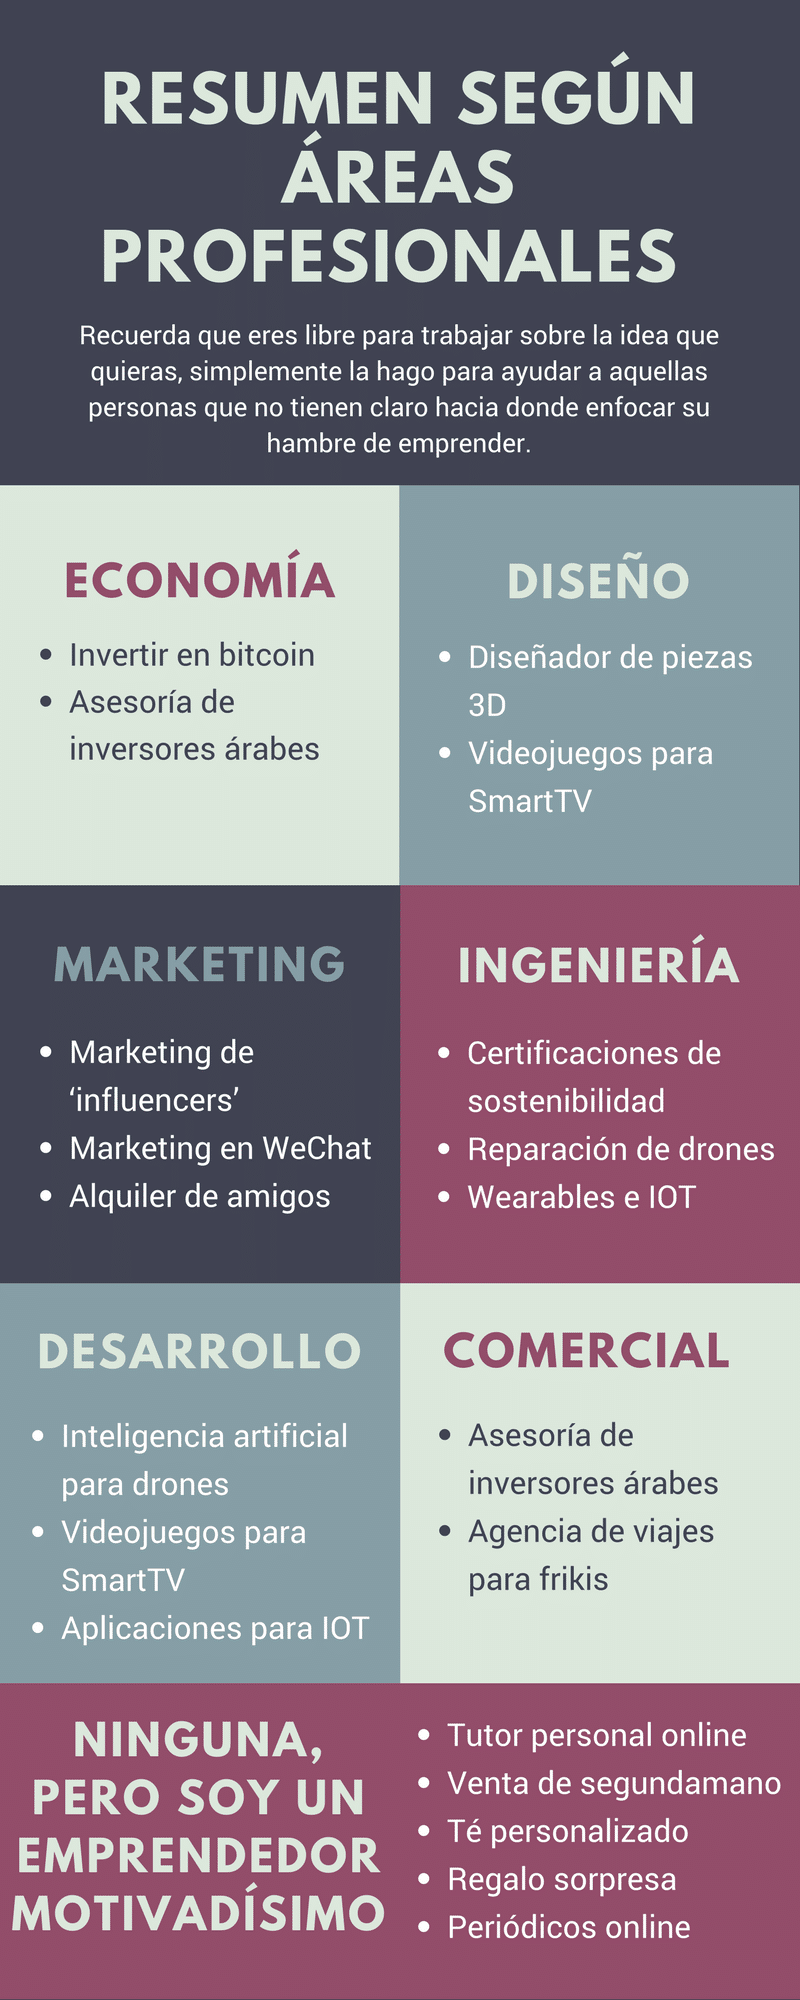 25 ideas de negocio originales y rentables【2018】 - Entrepreneursfight